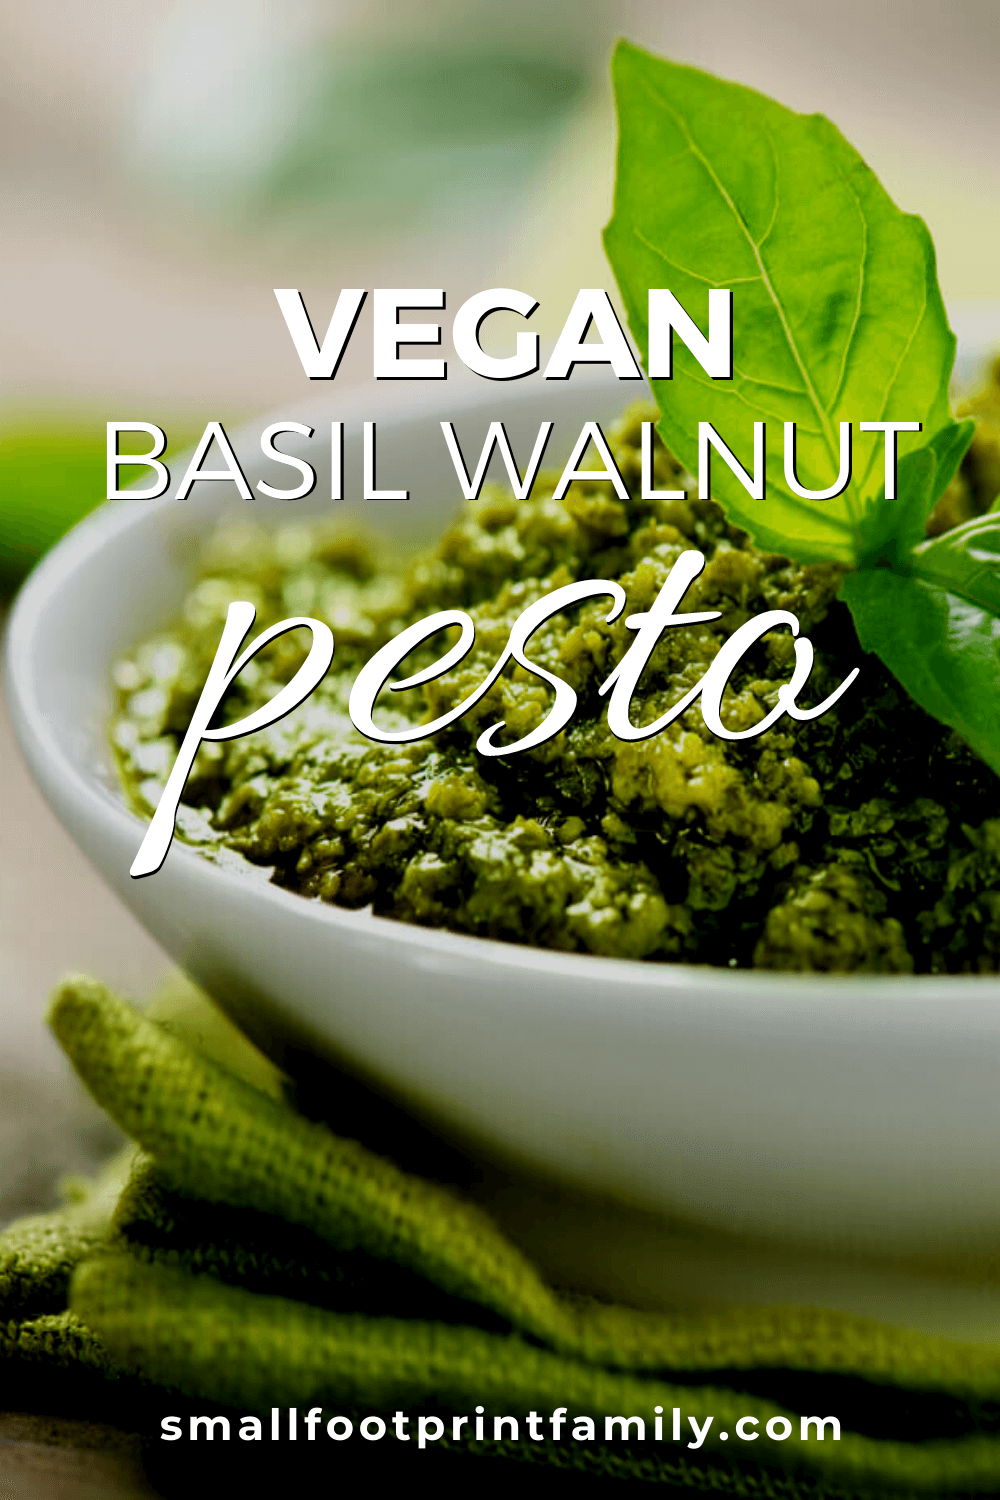 This non-dairy take on the Italian classic pesto is nutty, savory and delicious. You won't even miss the cheese.#vegan #recipes #paleo #paleodiet #pesto #gardening #nondairy #glutenfree